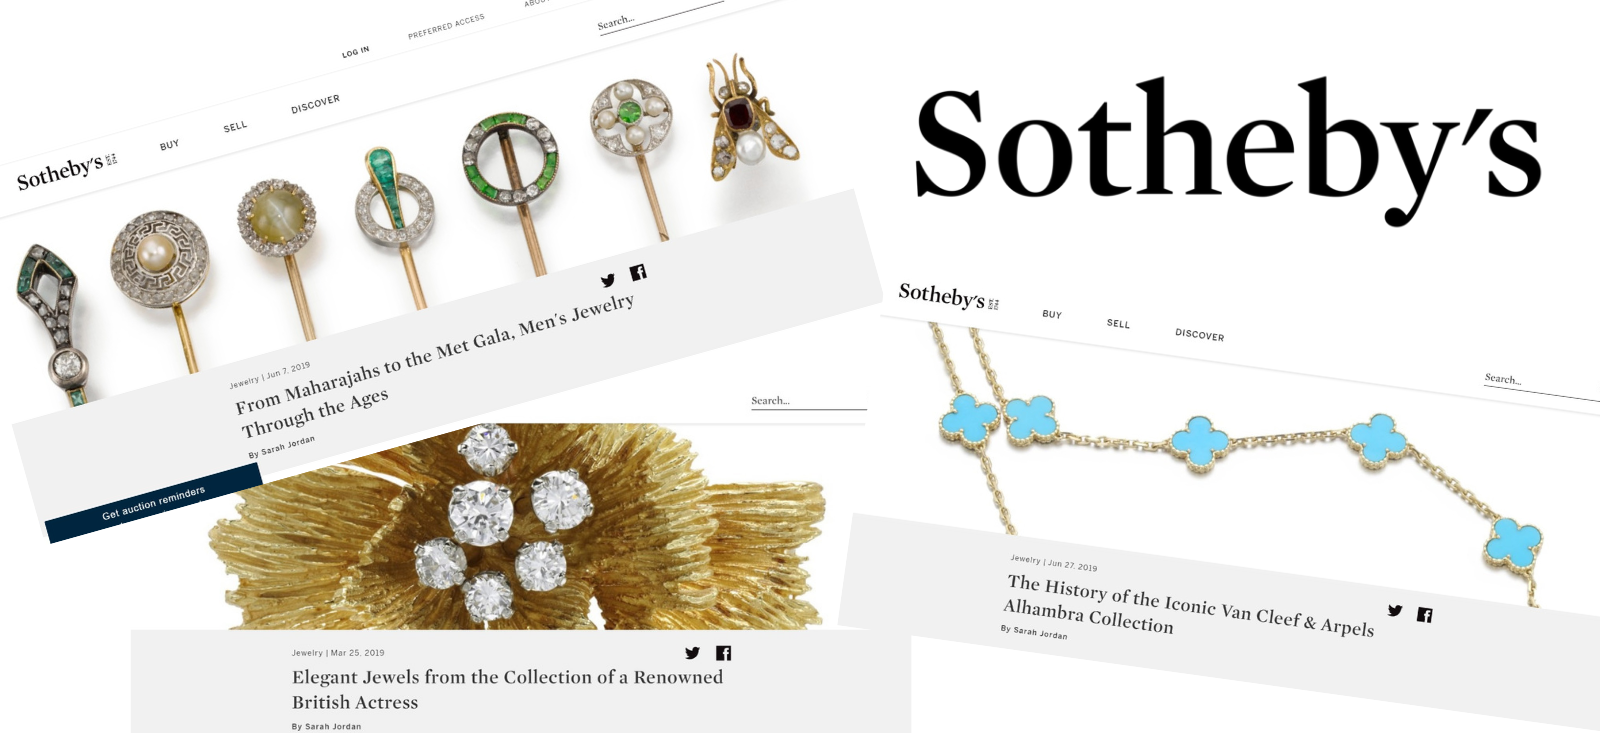 Sotheby's Auction House - The William Agency Portfolio - Copywriting and Feature Writing